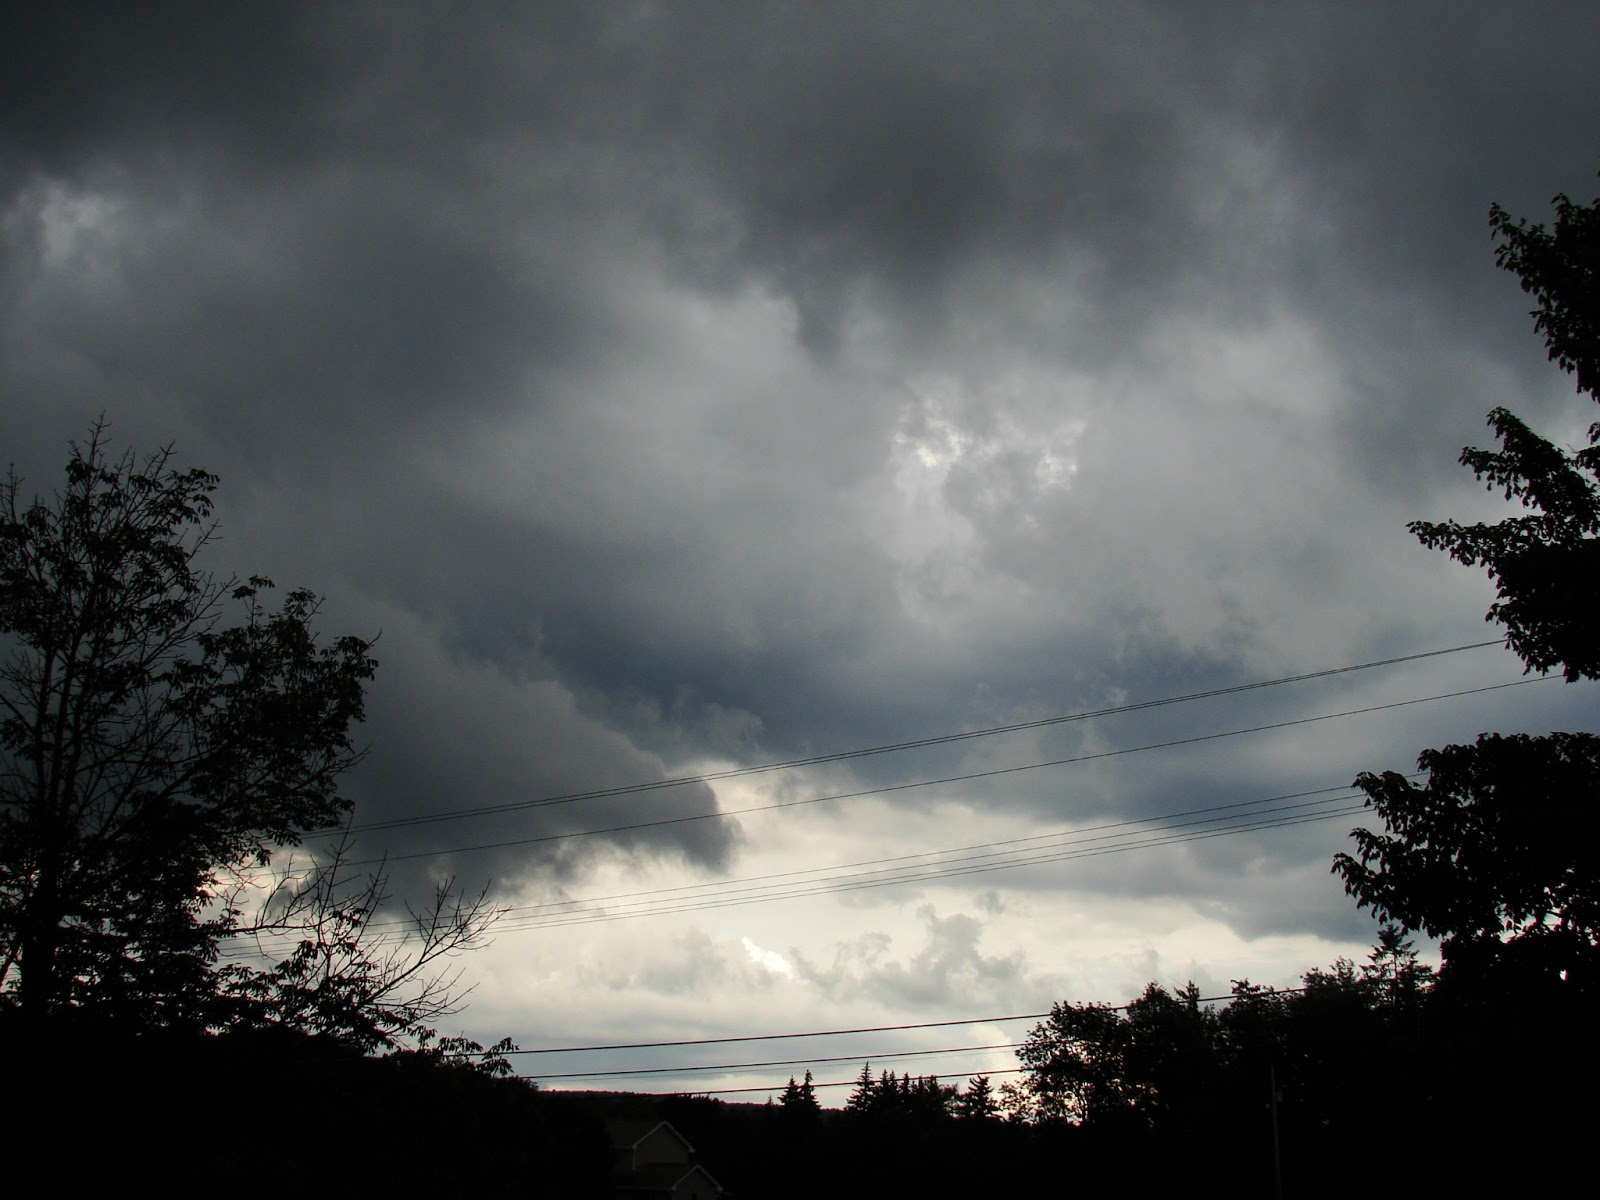 Real Rain Cloud spellbound nails